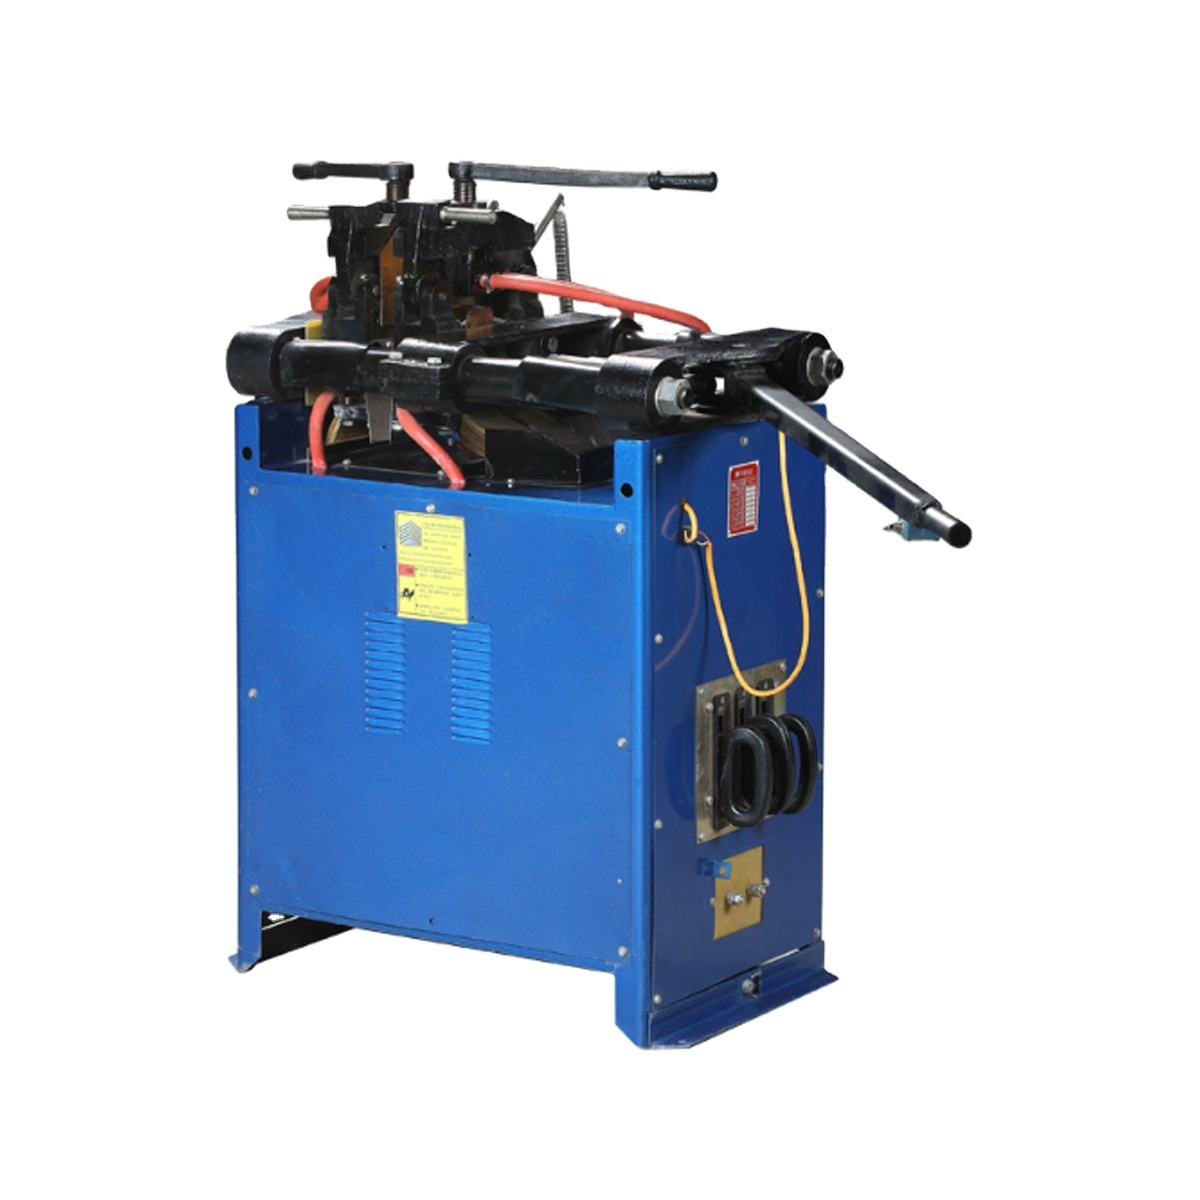 High quality Manual Aluminum Electrical Spot Welding Machine Tig